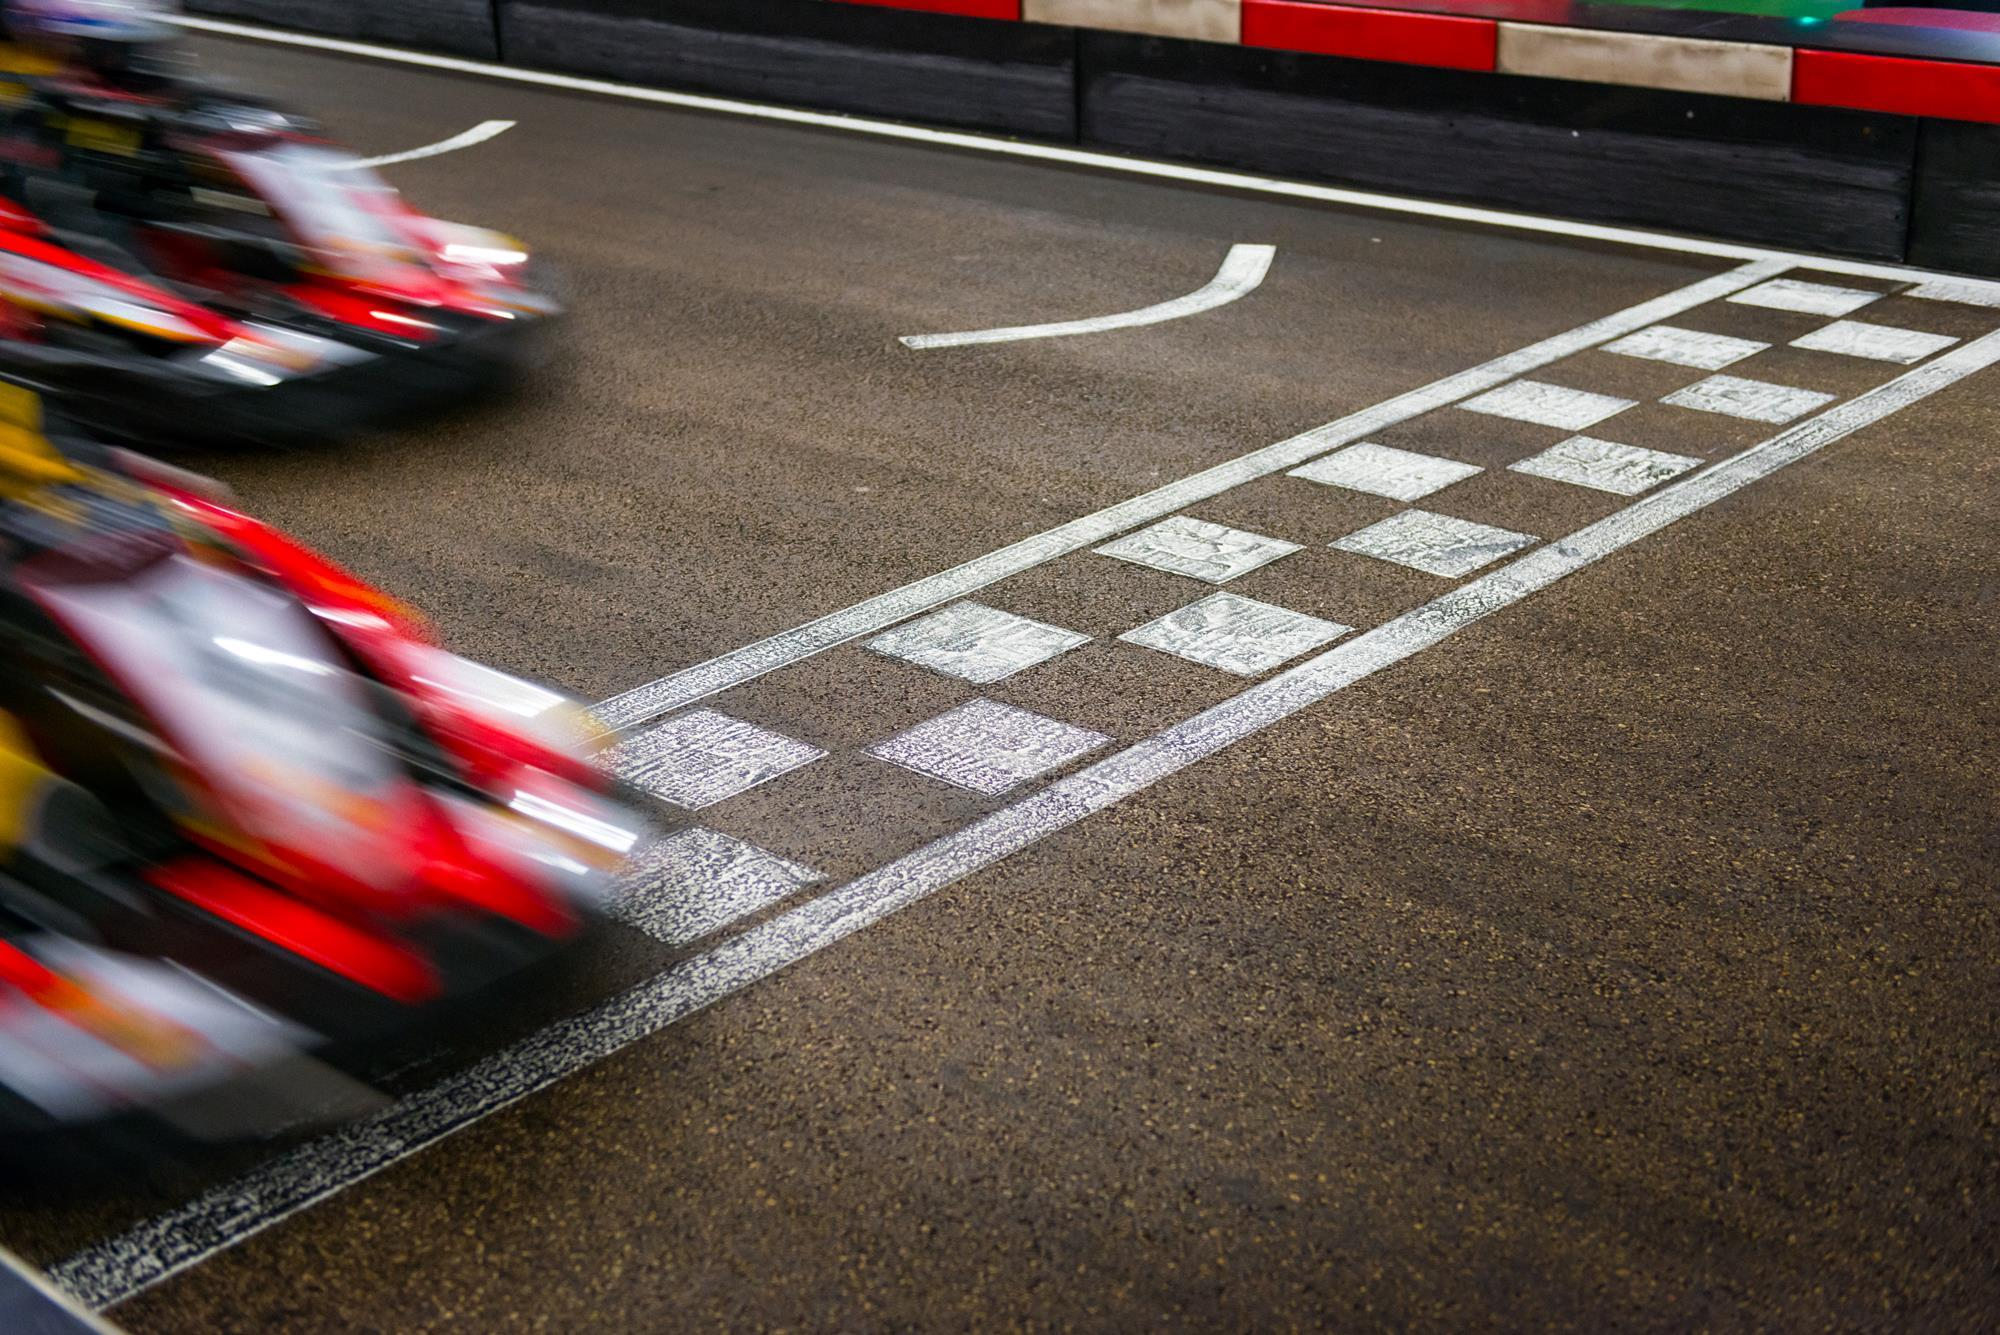 Race to the finish line: AV1, H 264, HEVC, VP9 & VVC